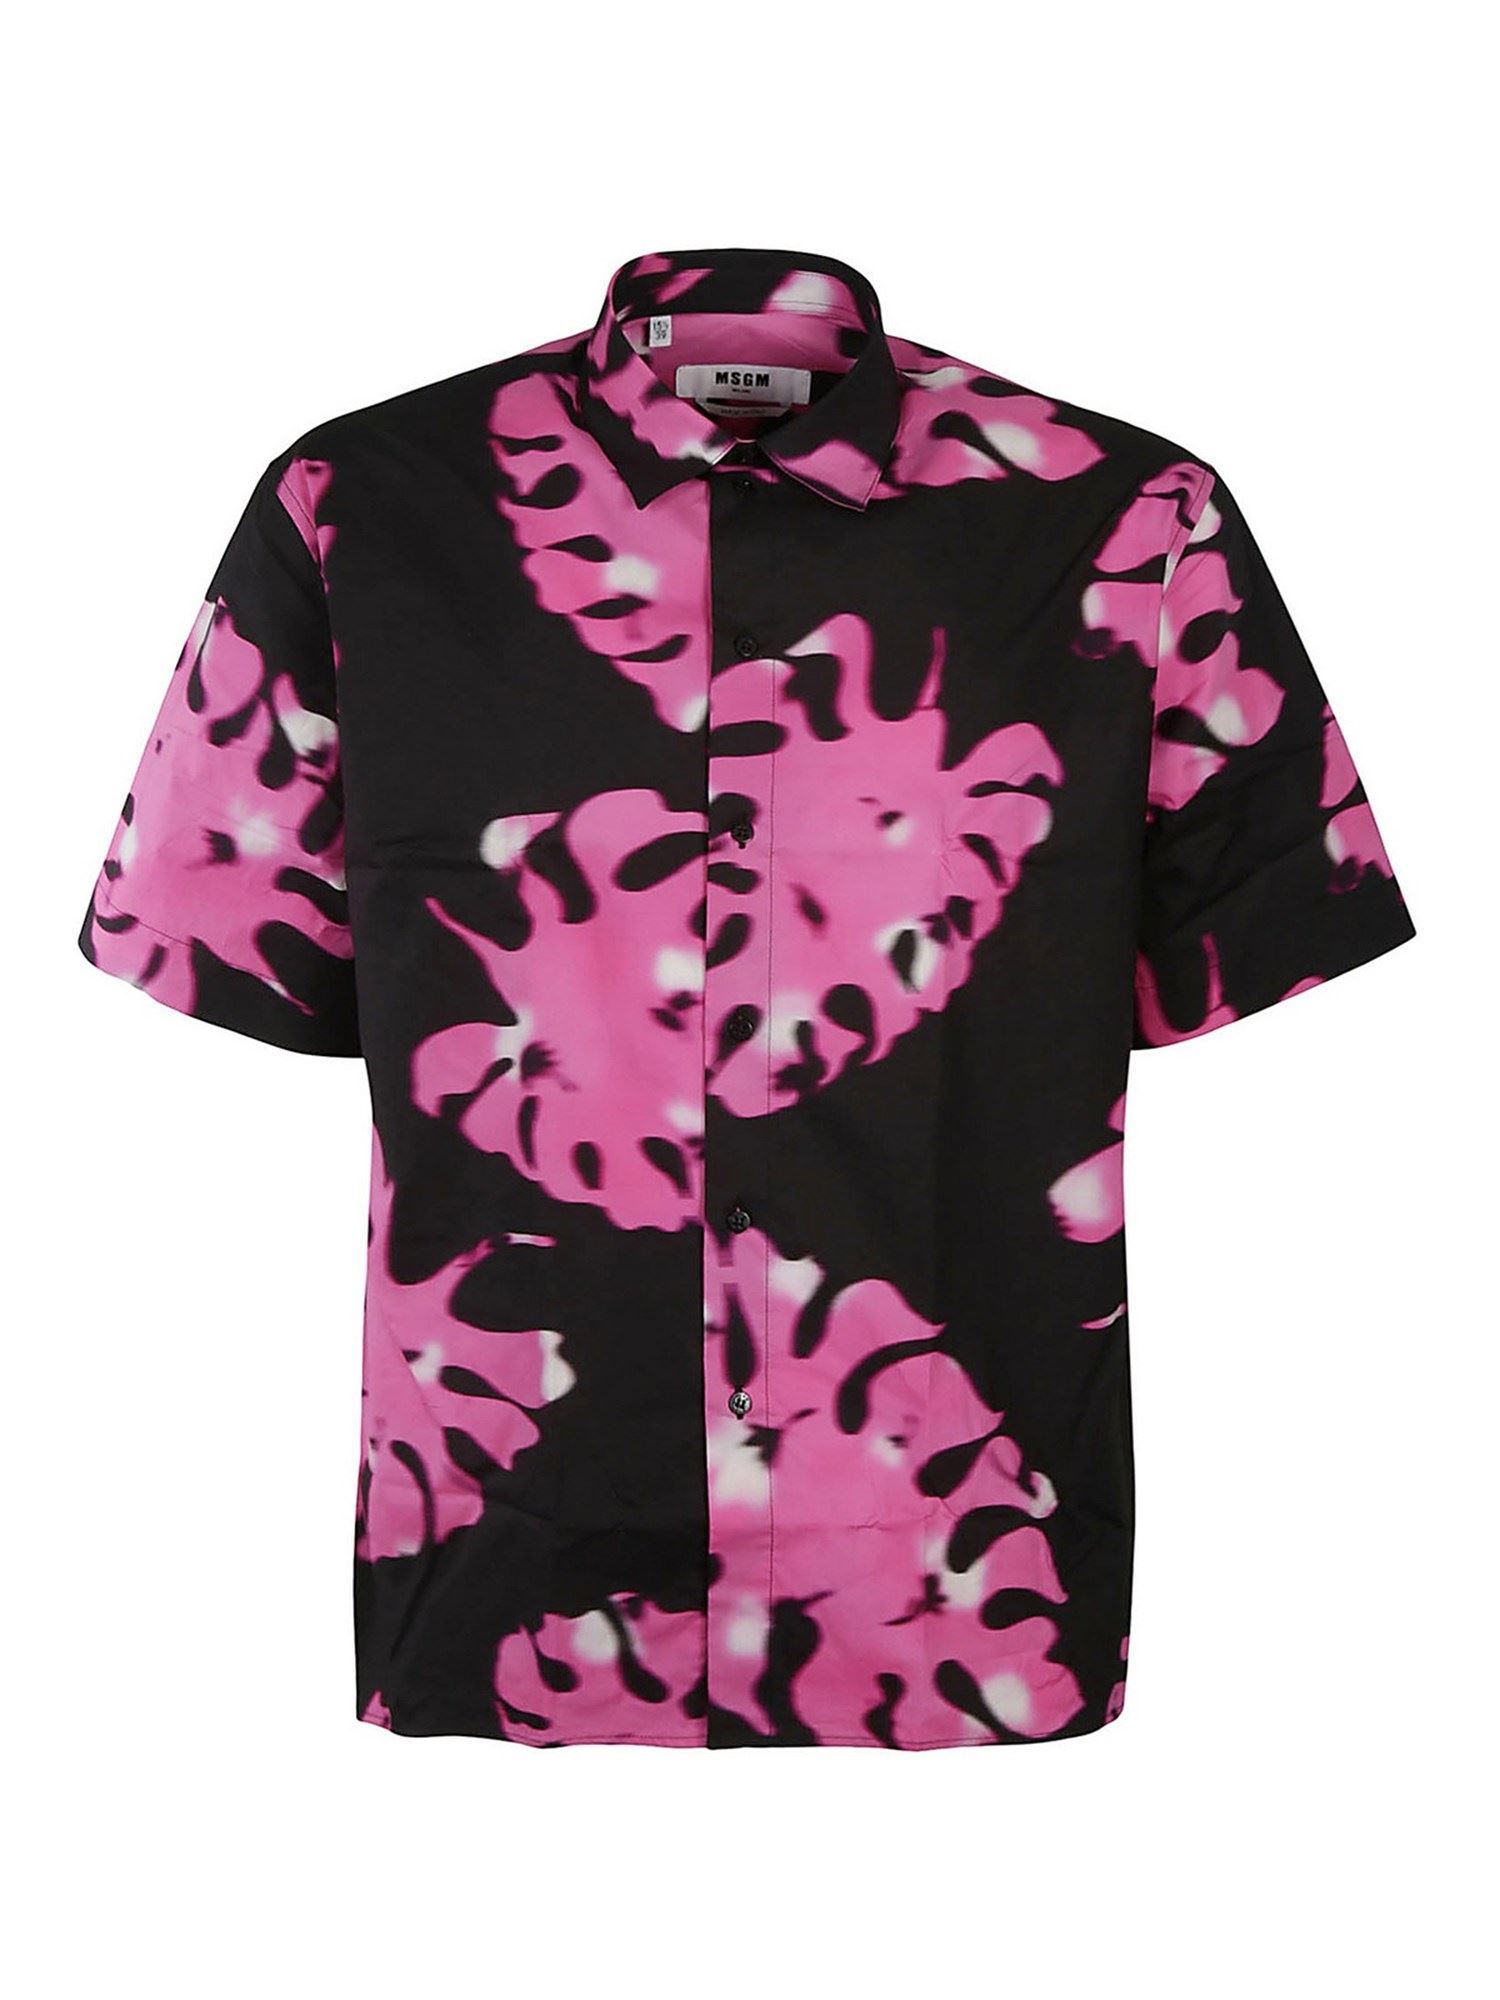 Msgm LEAF-PRINT SHORT-SLEEVES SHIRT IN BLACK AND PINK